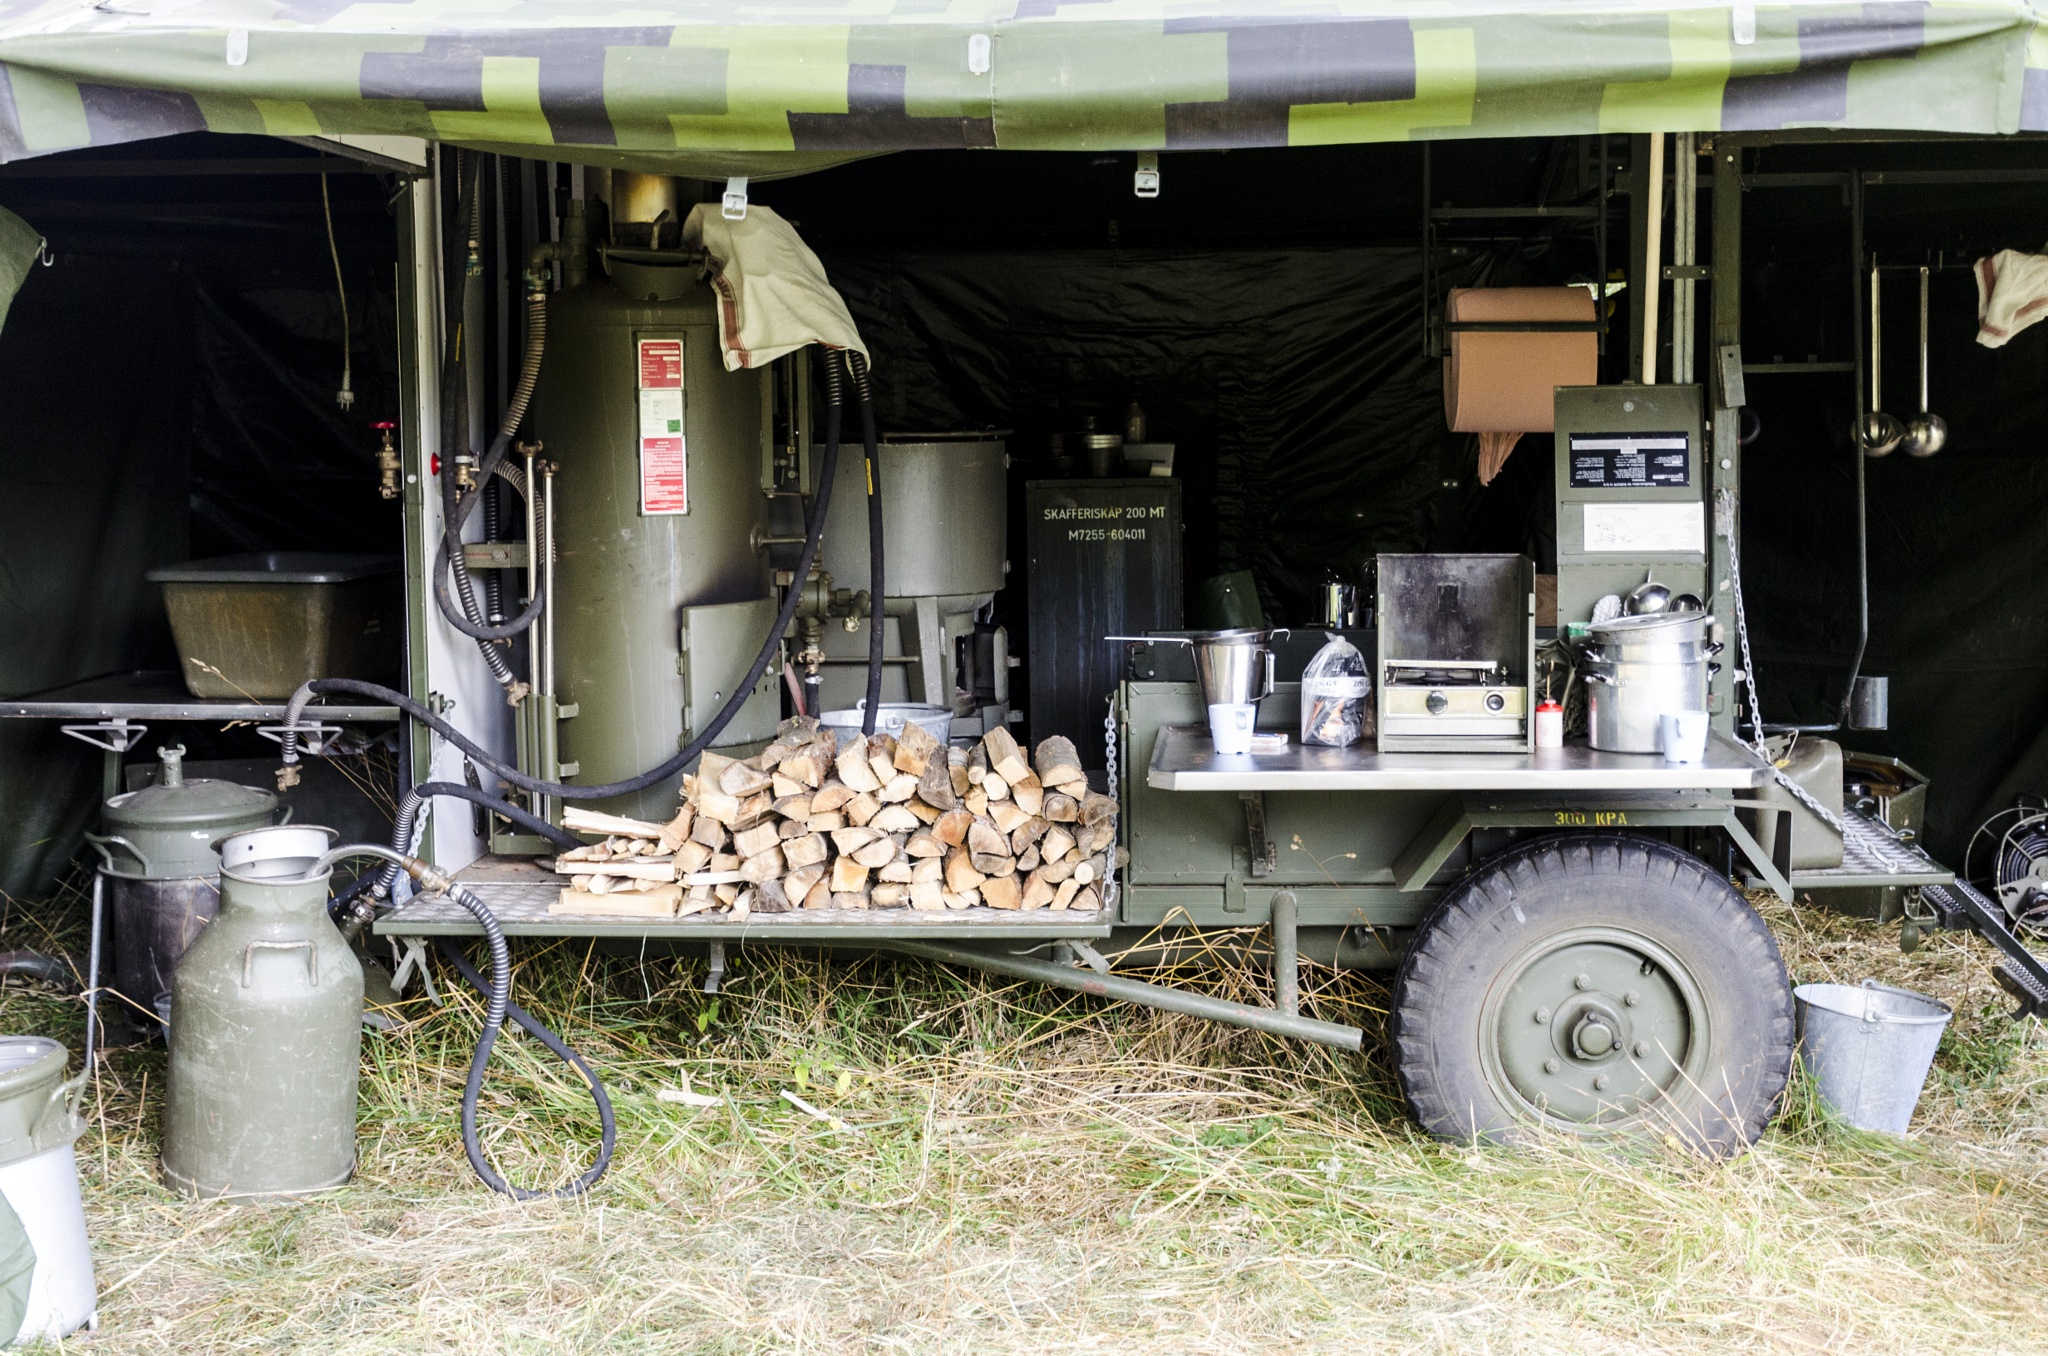 Field kitchen for the Swedish armed forces during the Cold War by Johnny Lythell